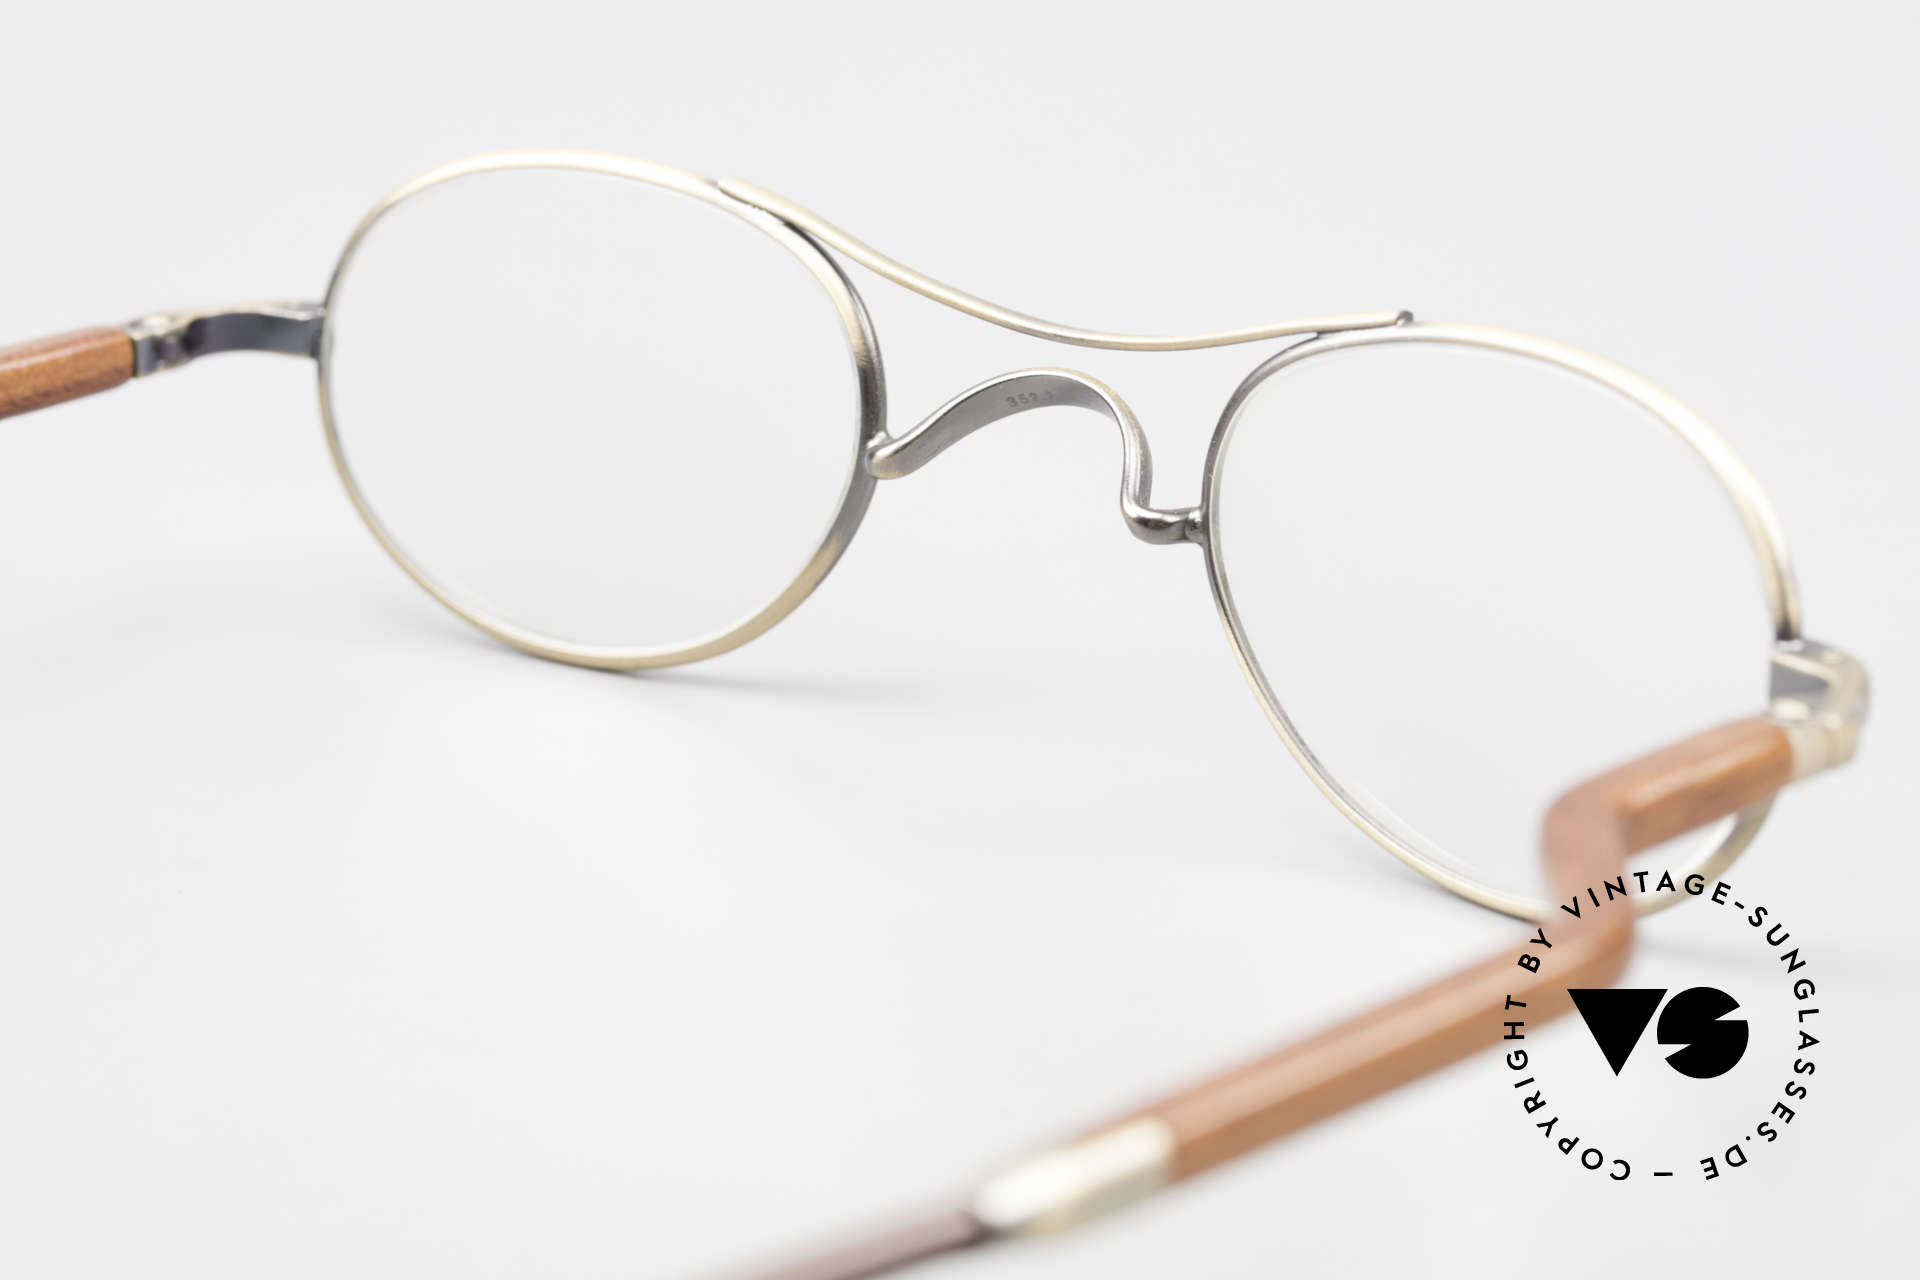 Gold & Wood 352 Luxury Wooden Specs Oval 90's, NO RETRO, but a precious old vintage ORIGINAL, Made for Men and Women